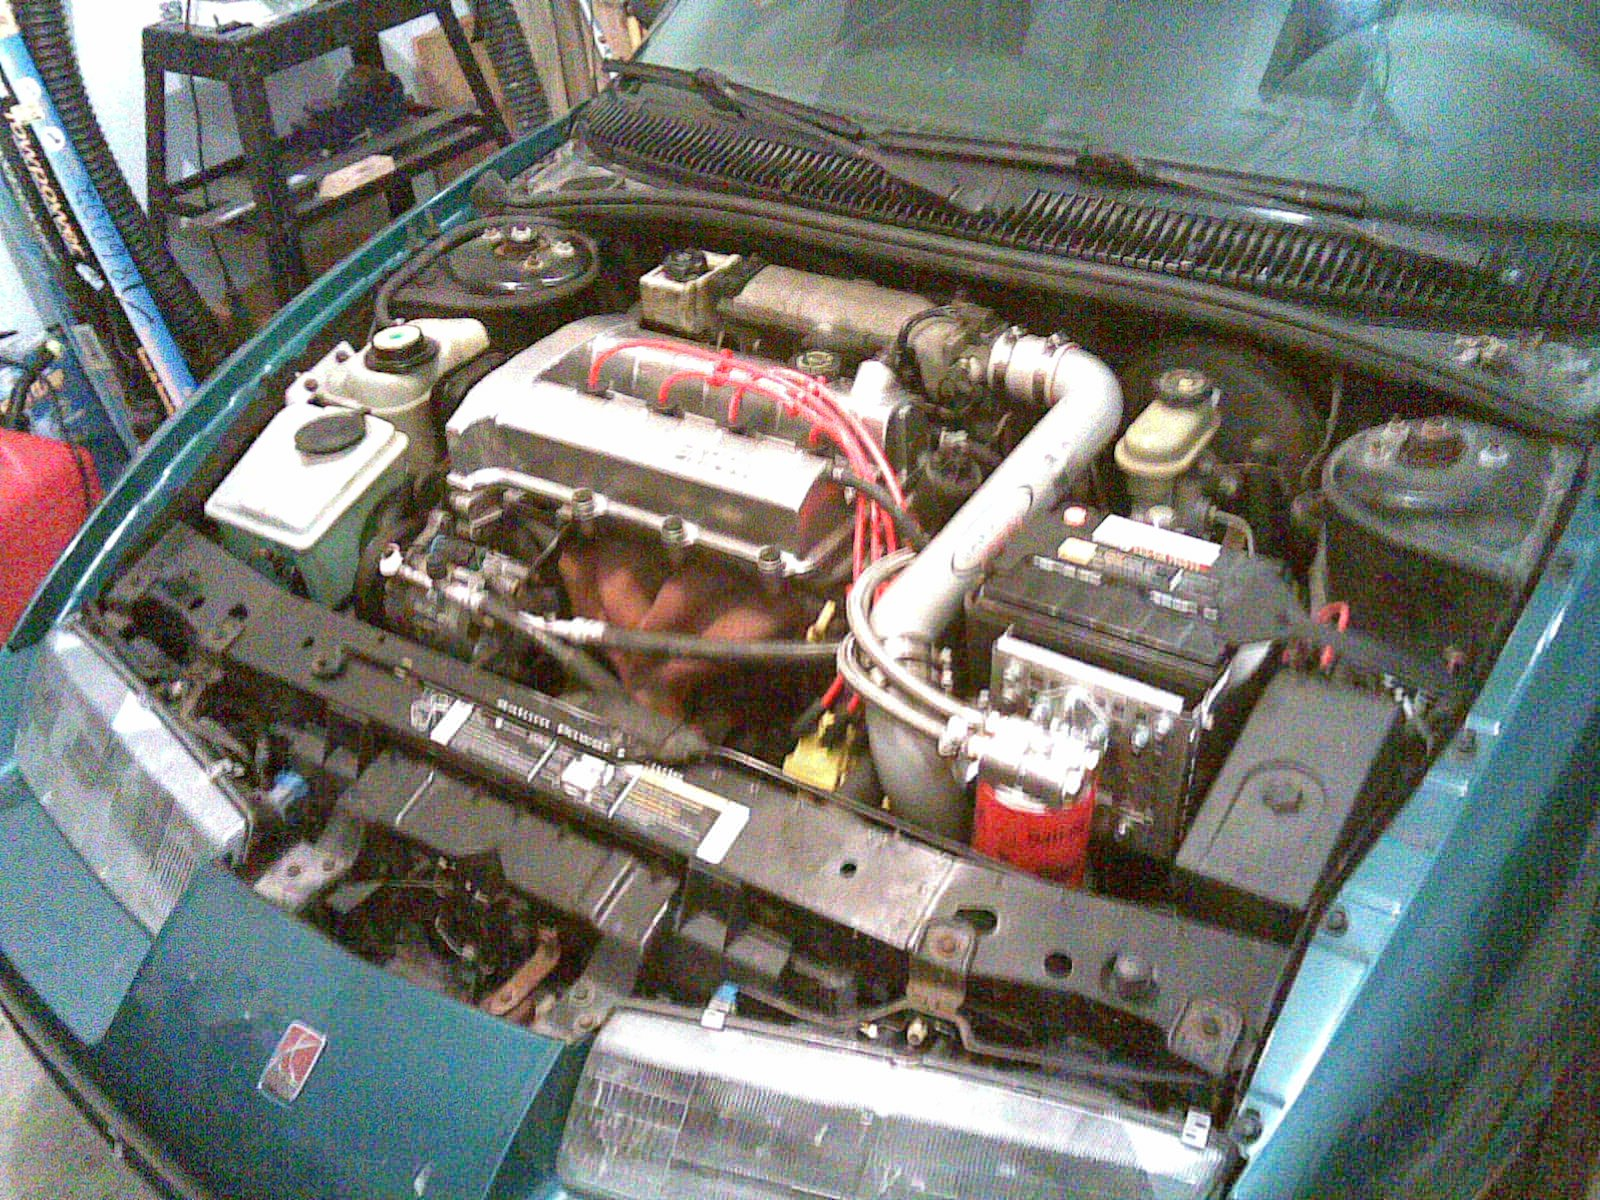 hight resolution of 2001 saturn sl2 engine diagram of parts wiring diagram database 2001 saturn sl2 engine diagram of